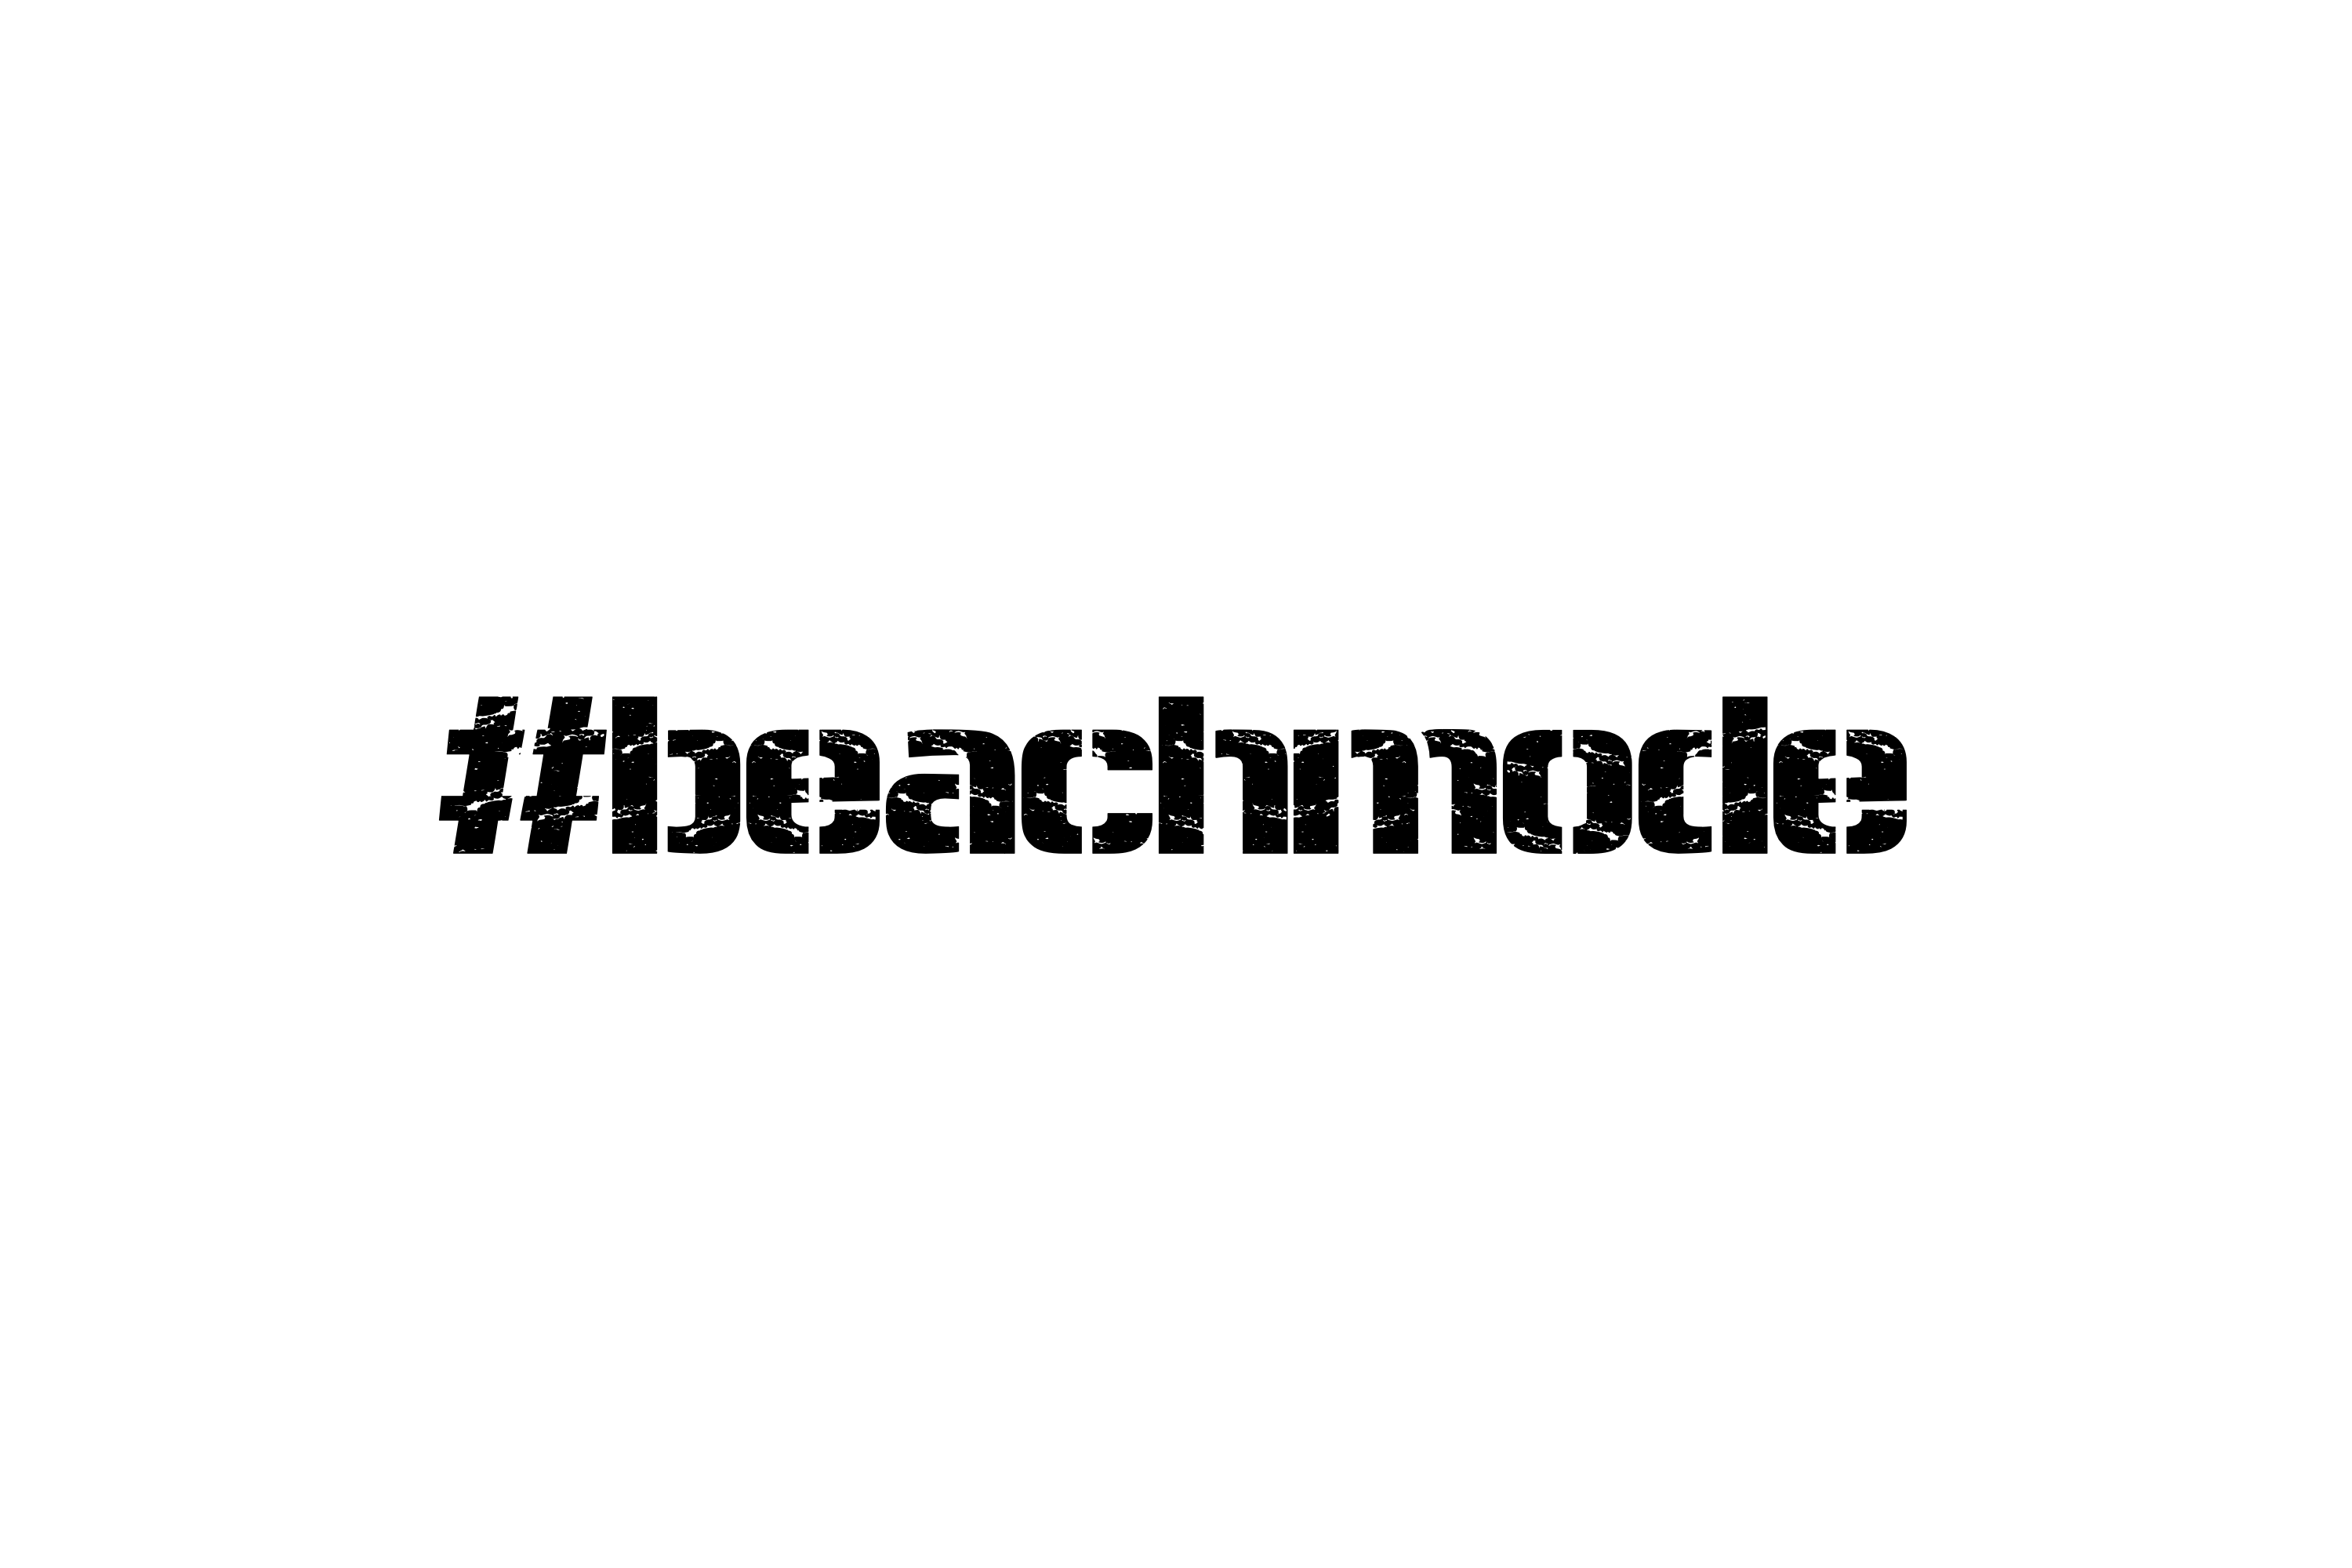 #beachmode logo from early bum